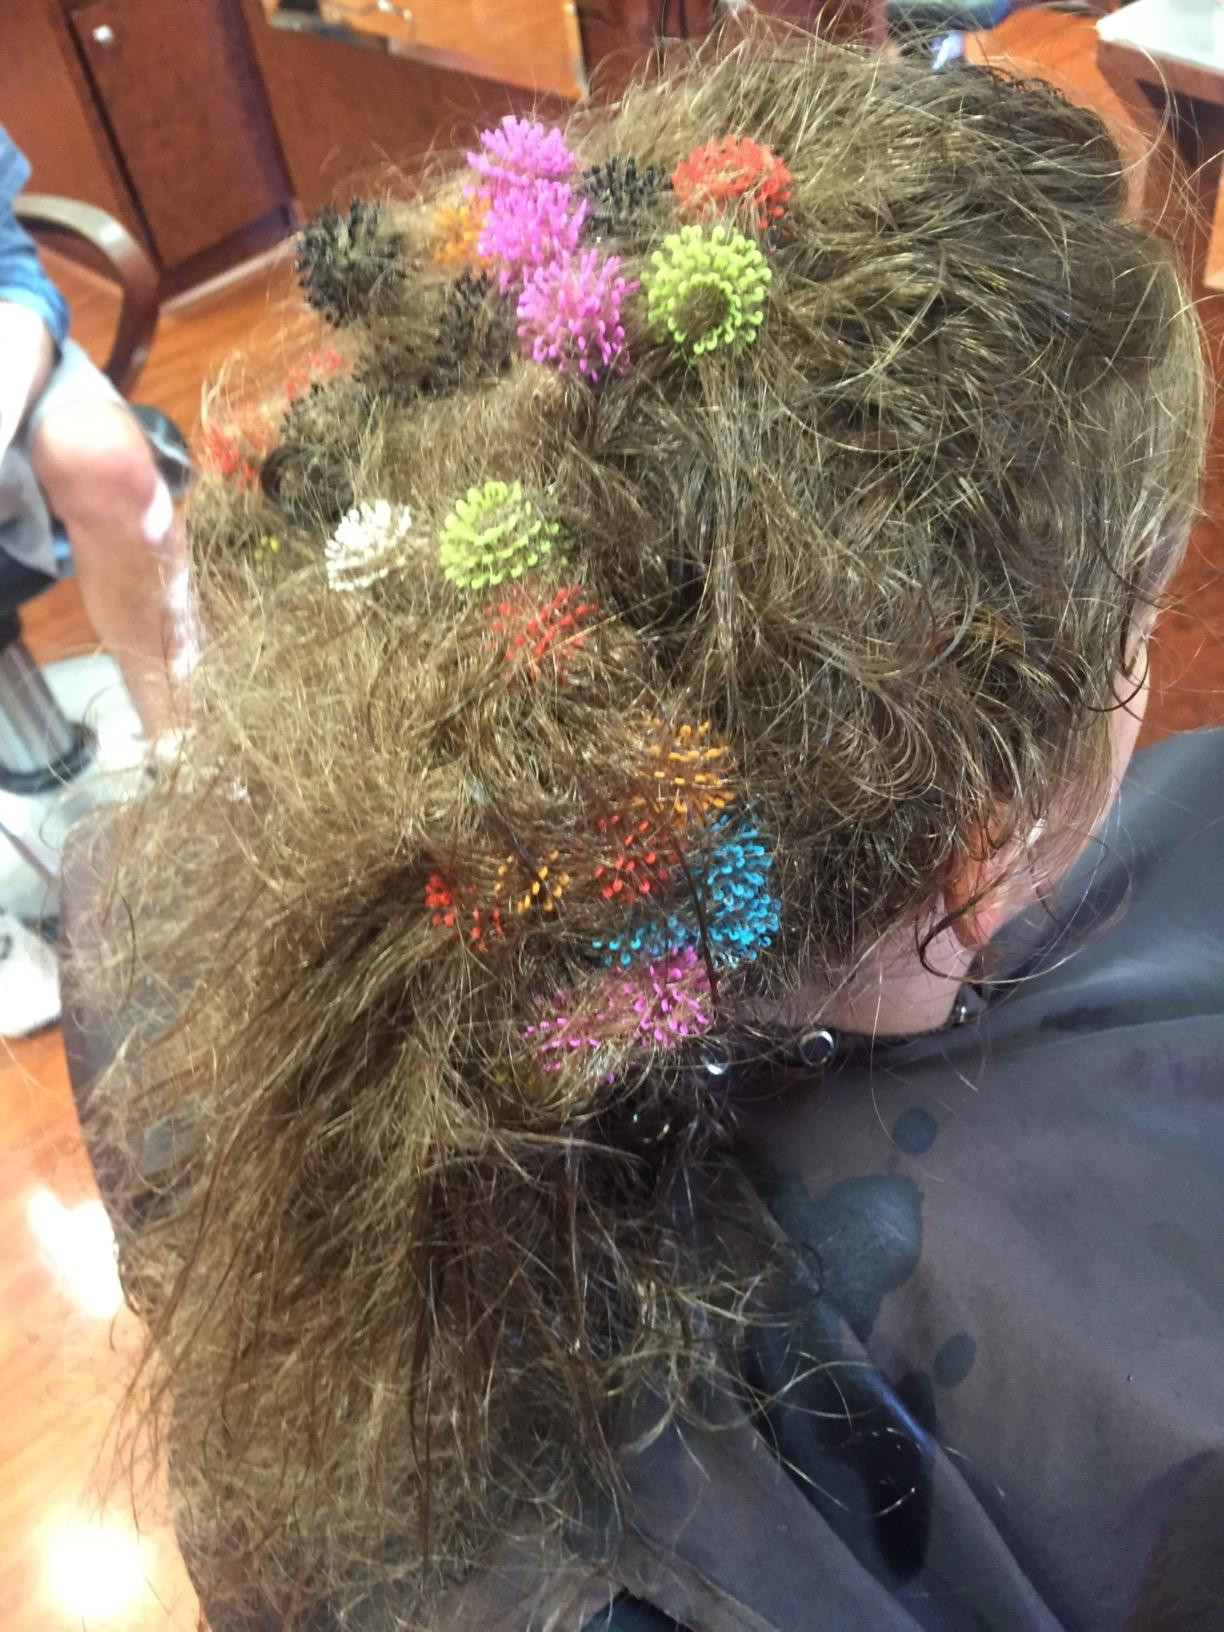 Kids Hair Hours  Popular New Toy Is Wrecking Kids' Hair And Traumatizing